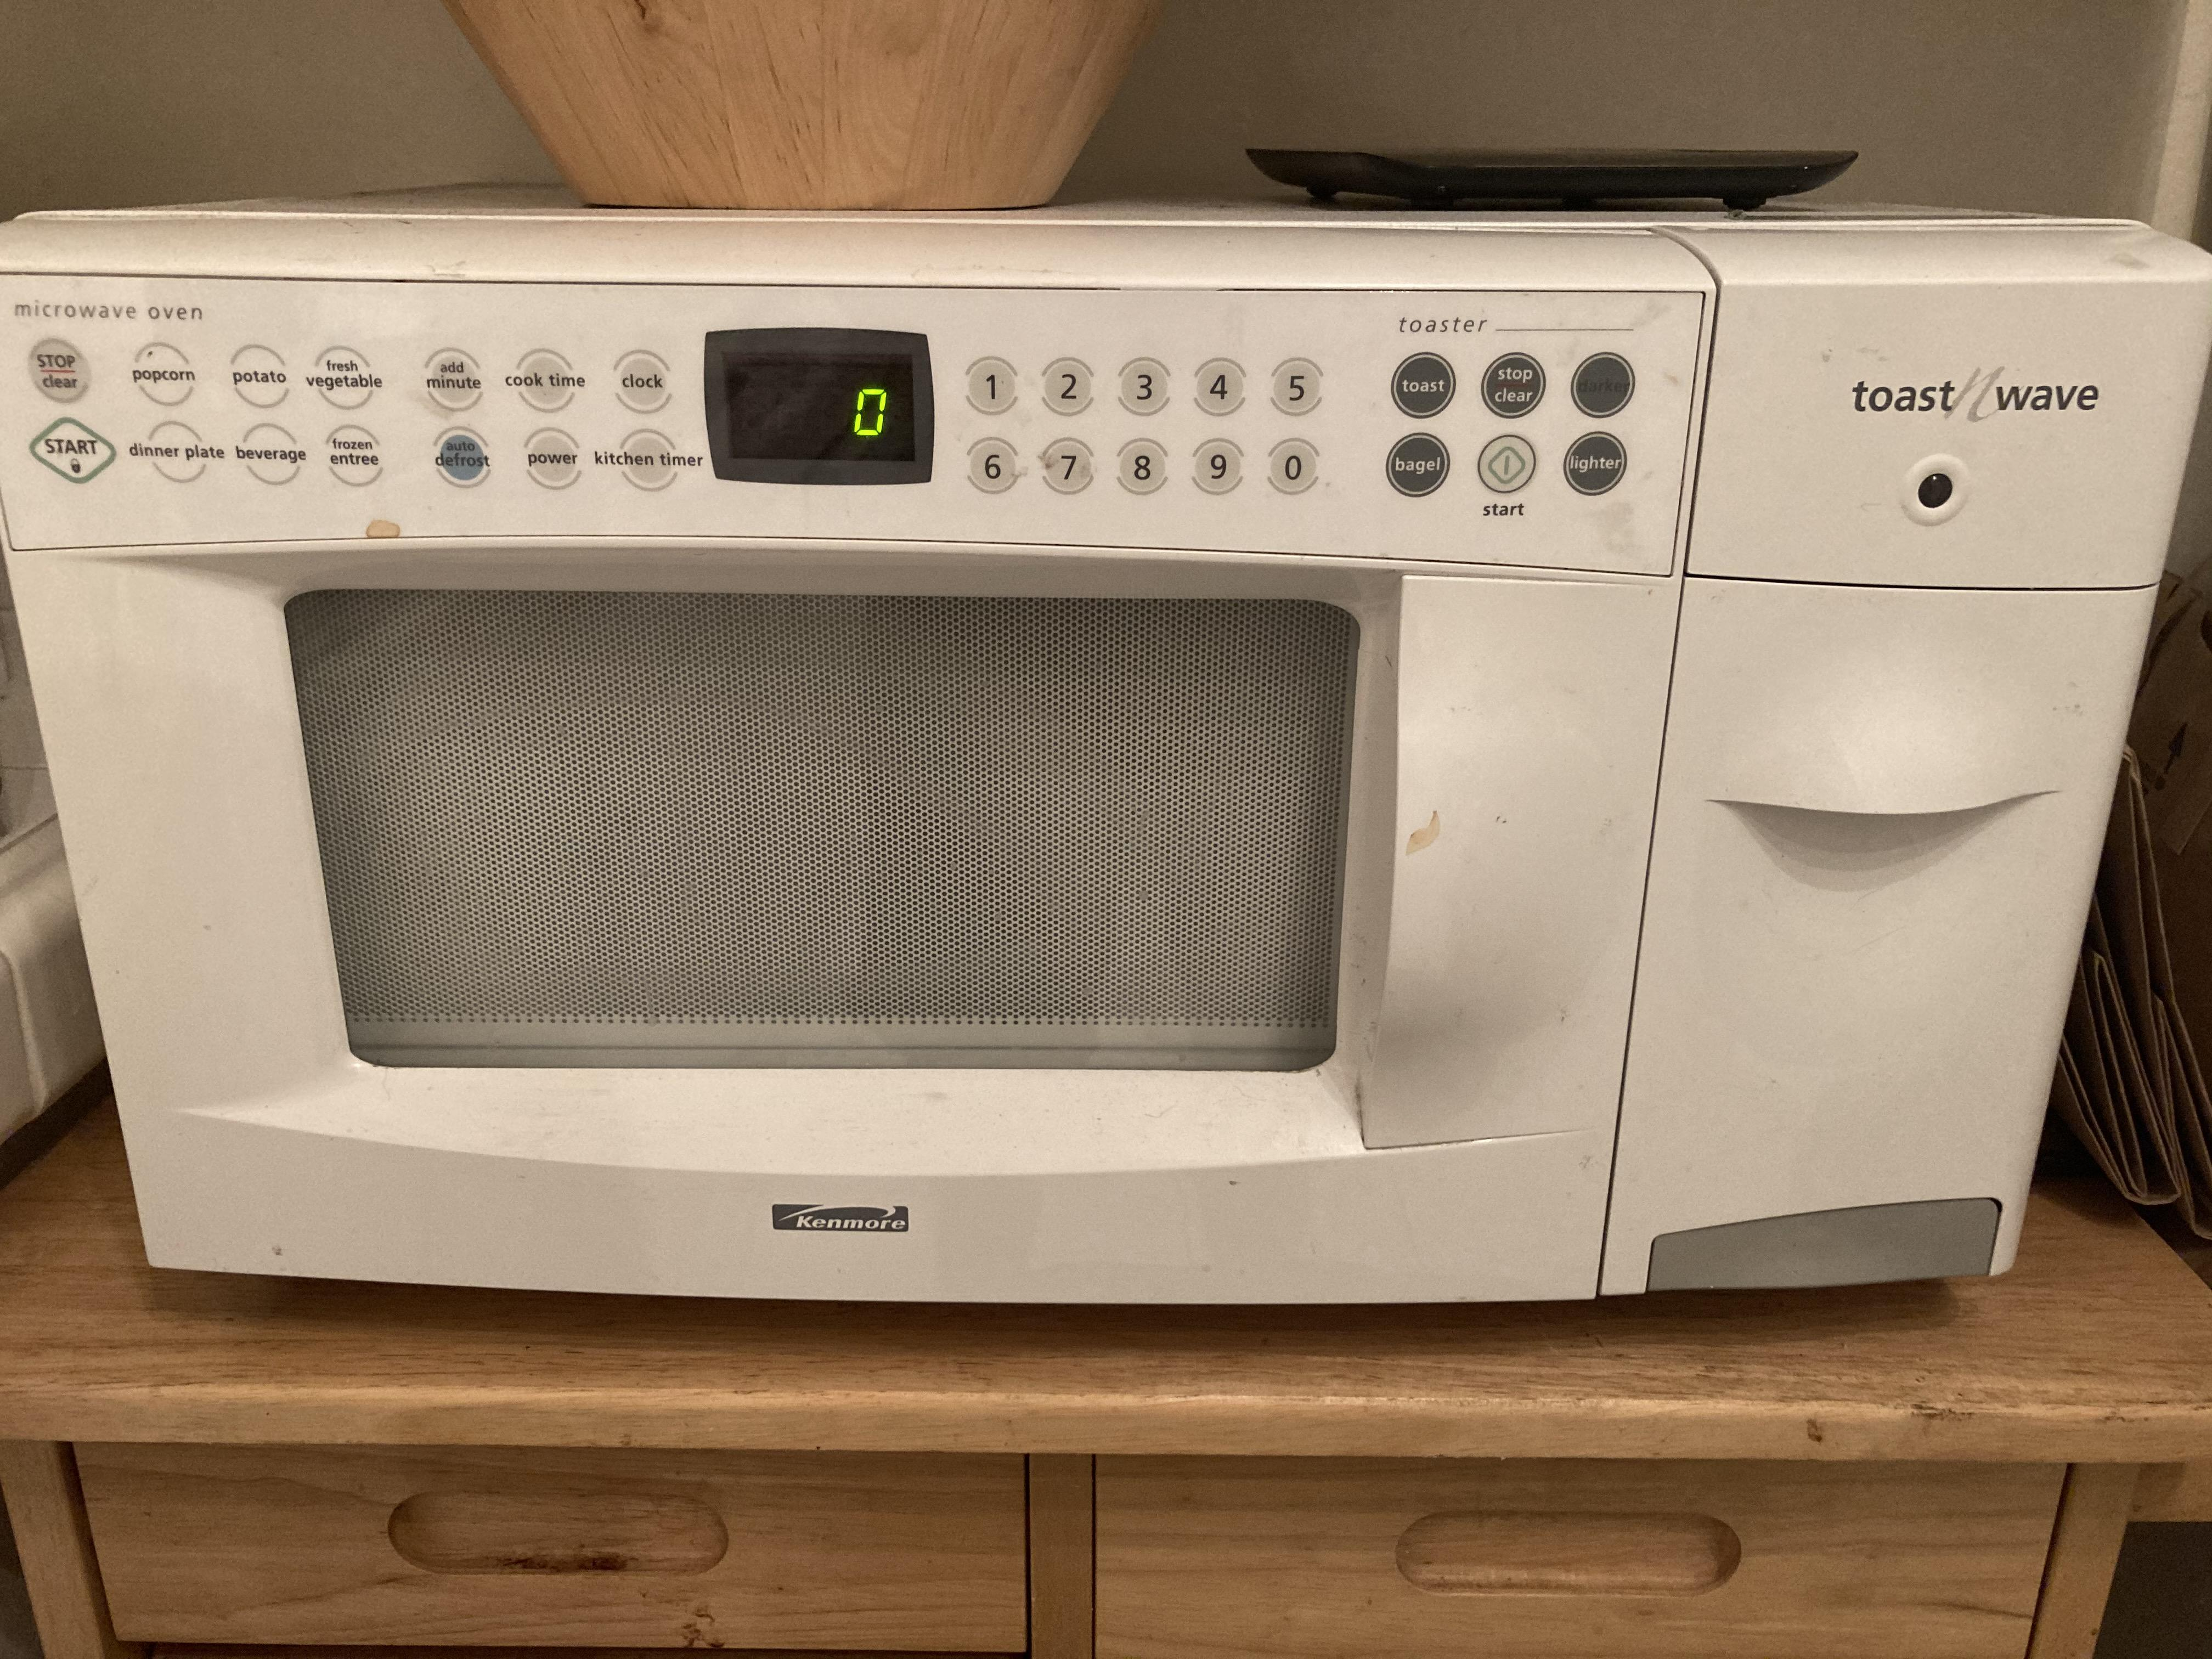 the microwave in my new apartment has a